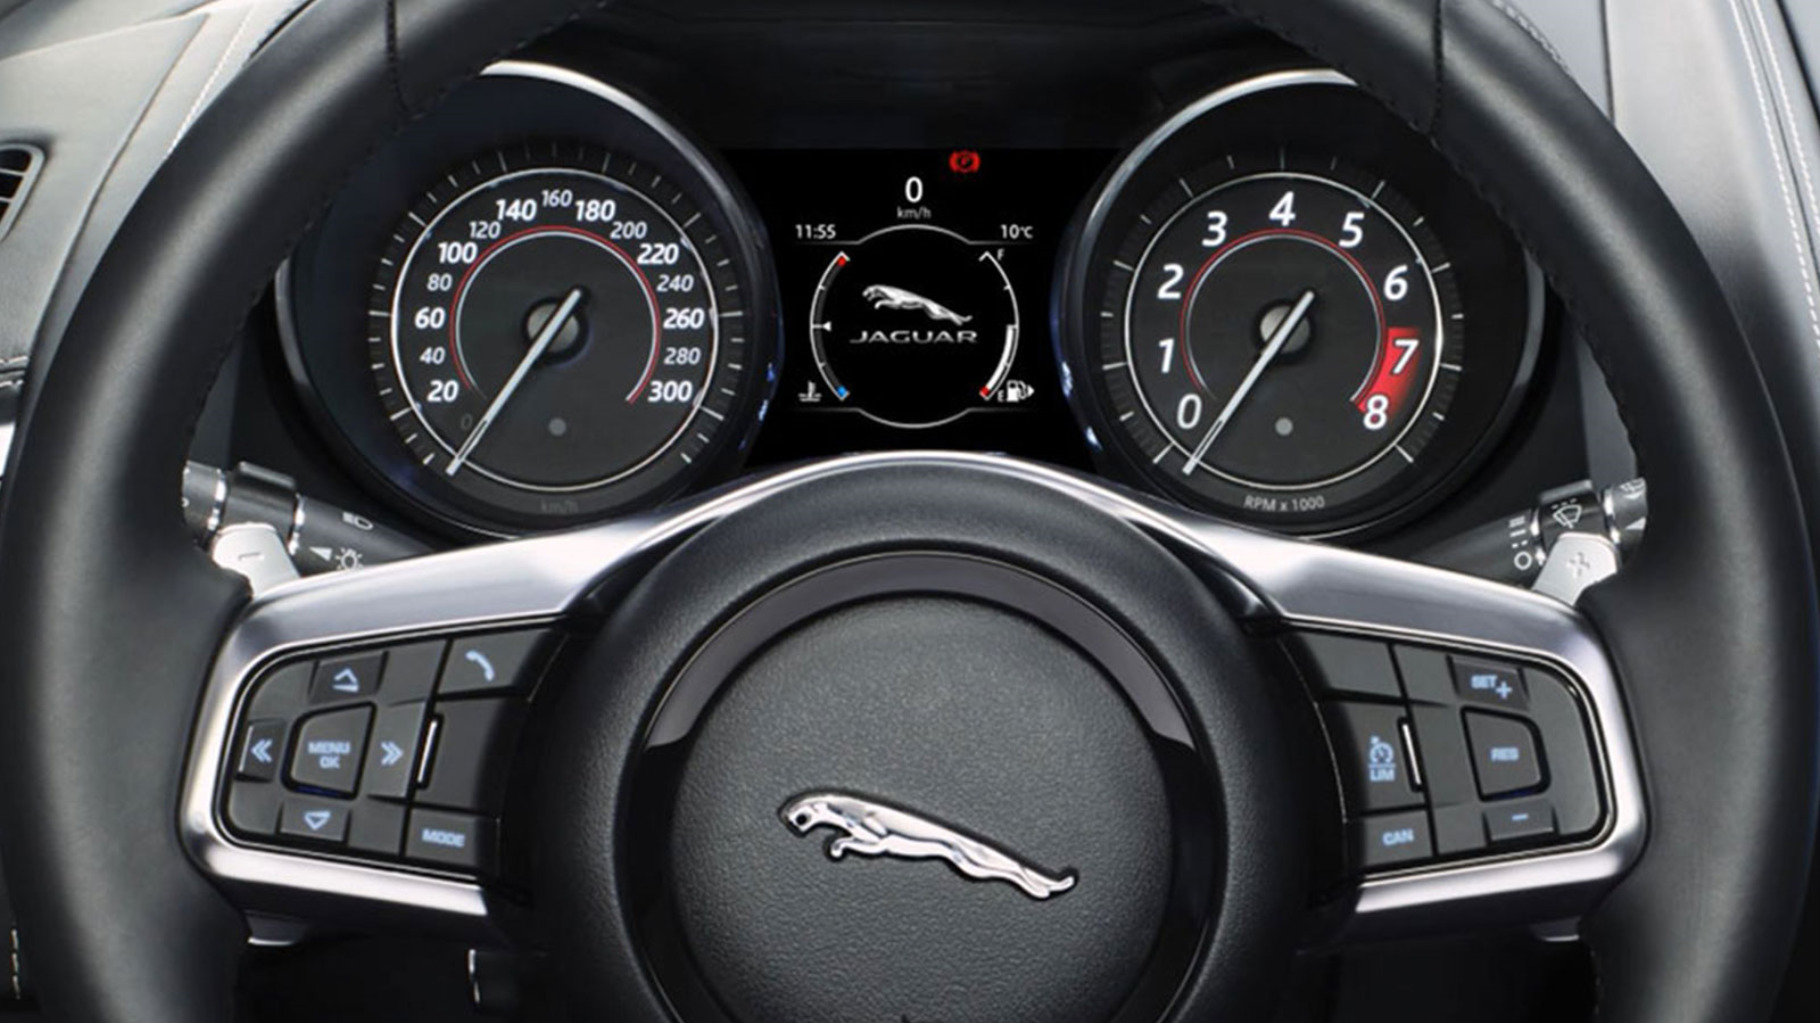 Close Up Of Jaguar F-Type Steering Wheel Controls.